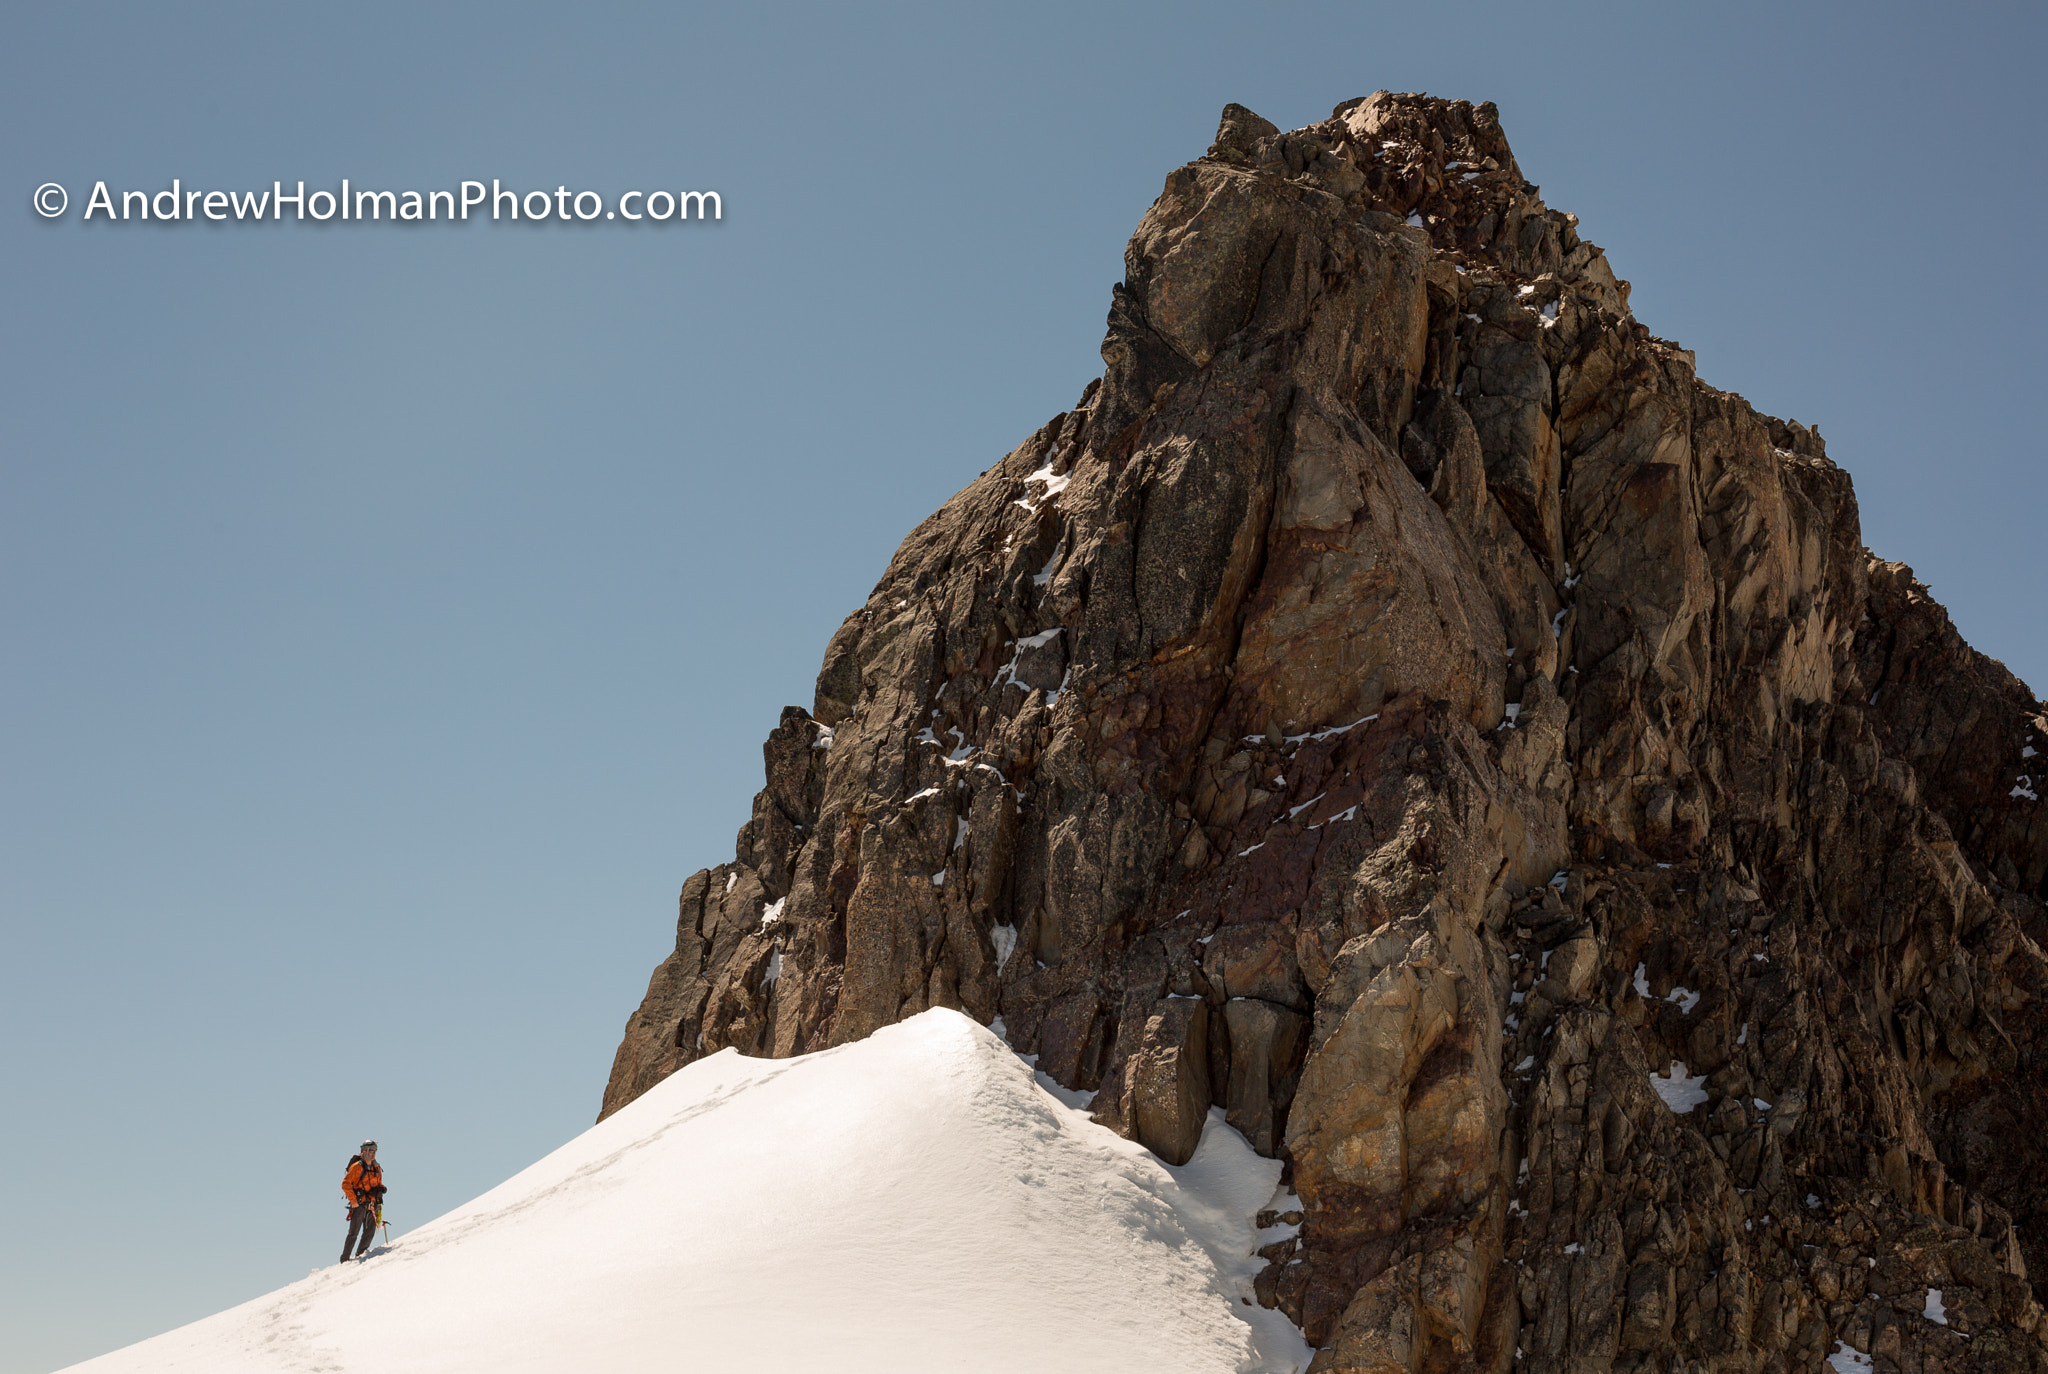 Photograph Mt Olympus Summit Block by Andrew Holman on 500px